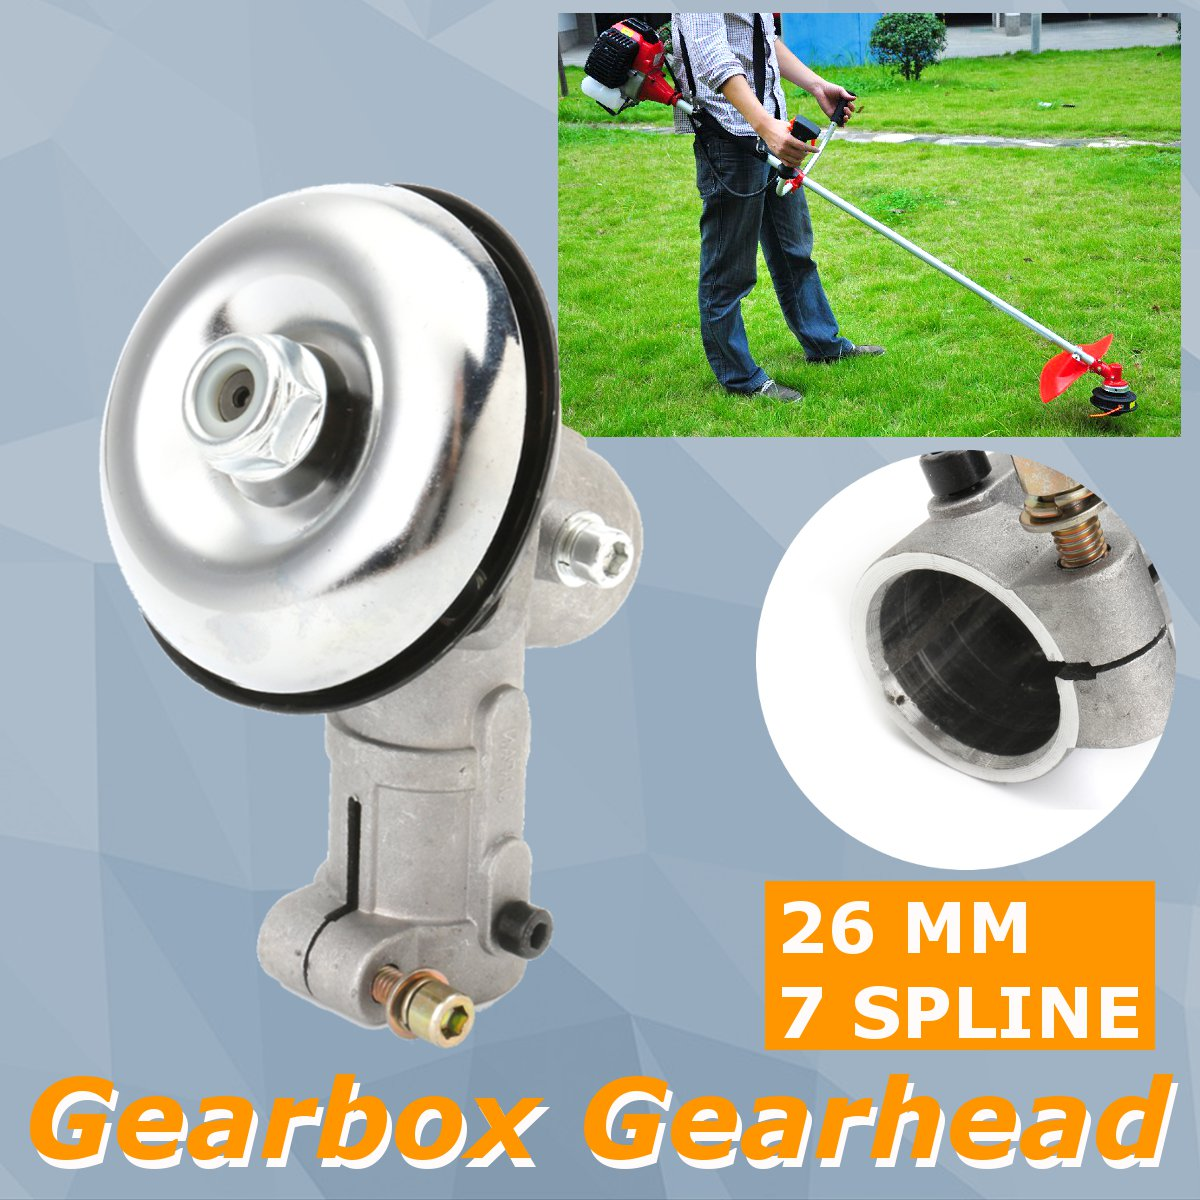 GEARBOX GEARHEAD FITS VARIOUS STRIMMER TRIMMER BRUSH CUTTER REPLACEMENT 28MM